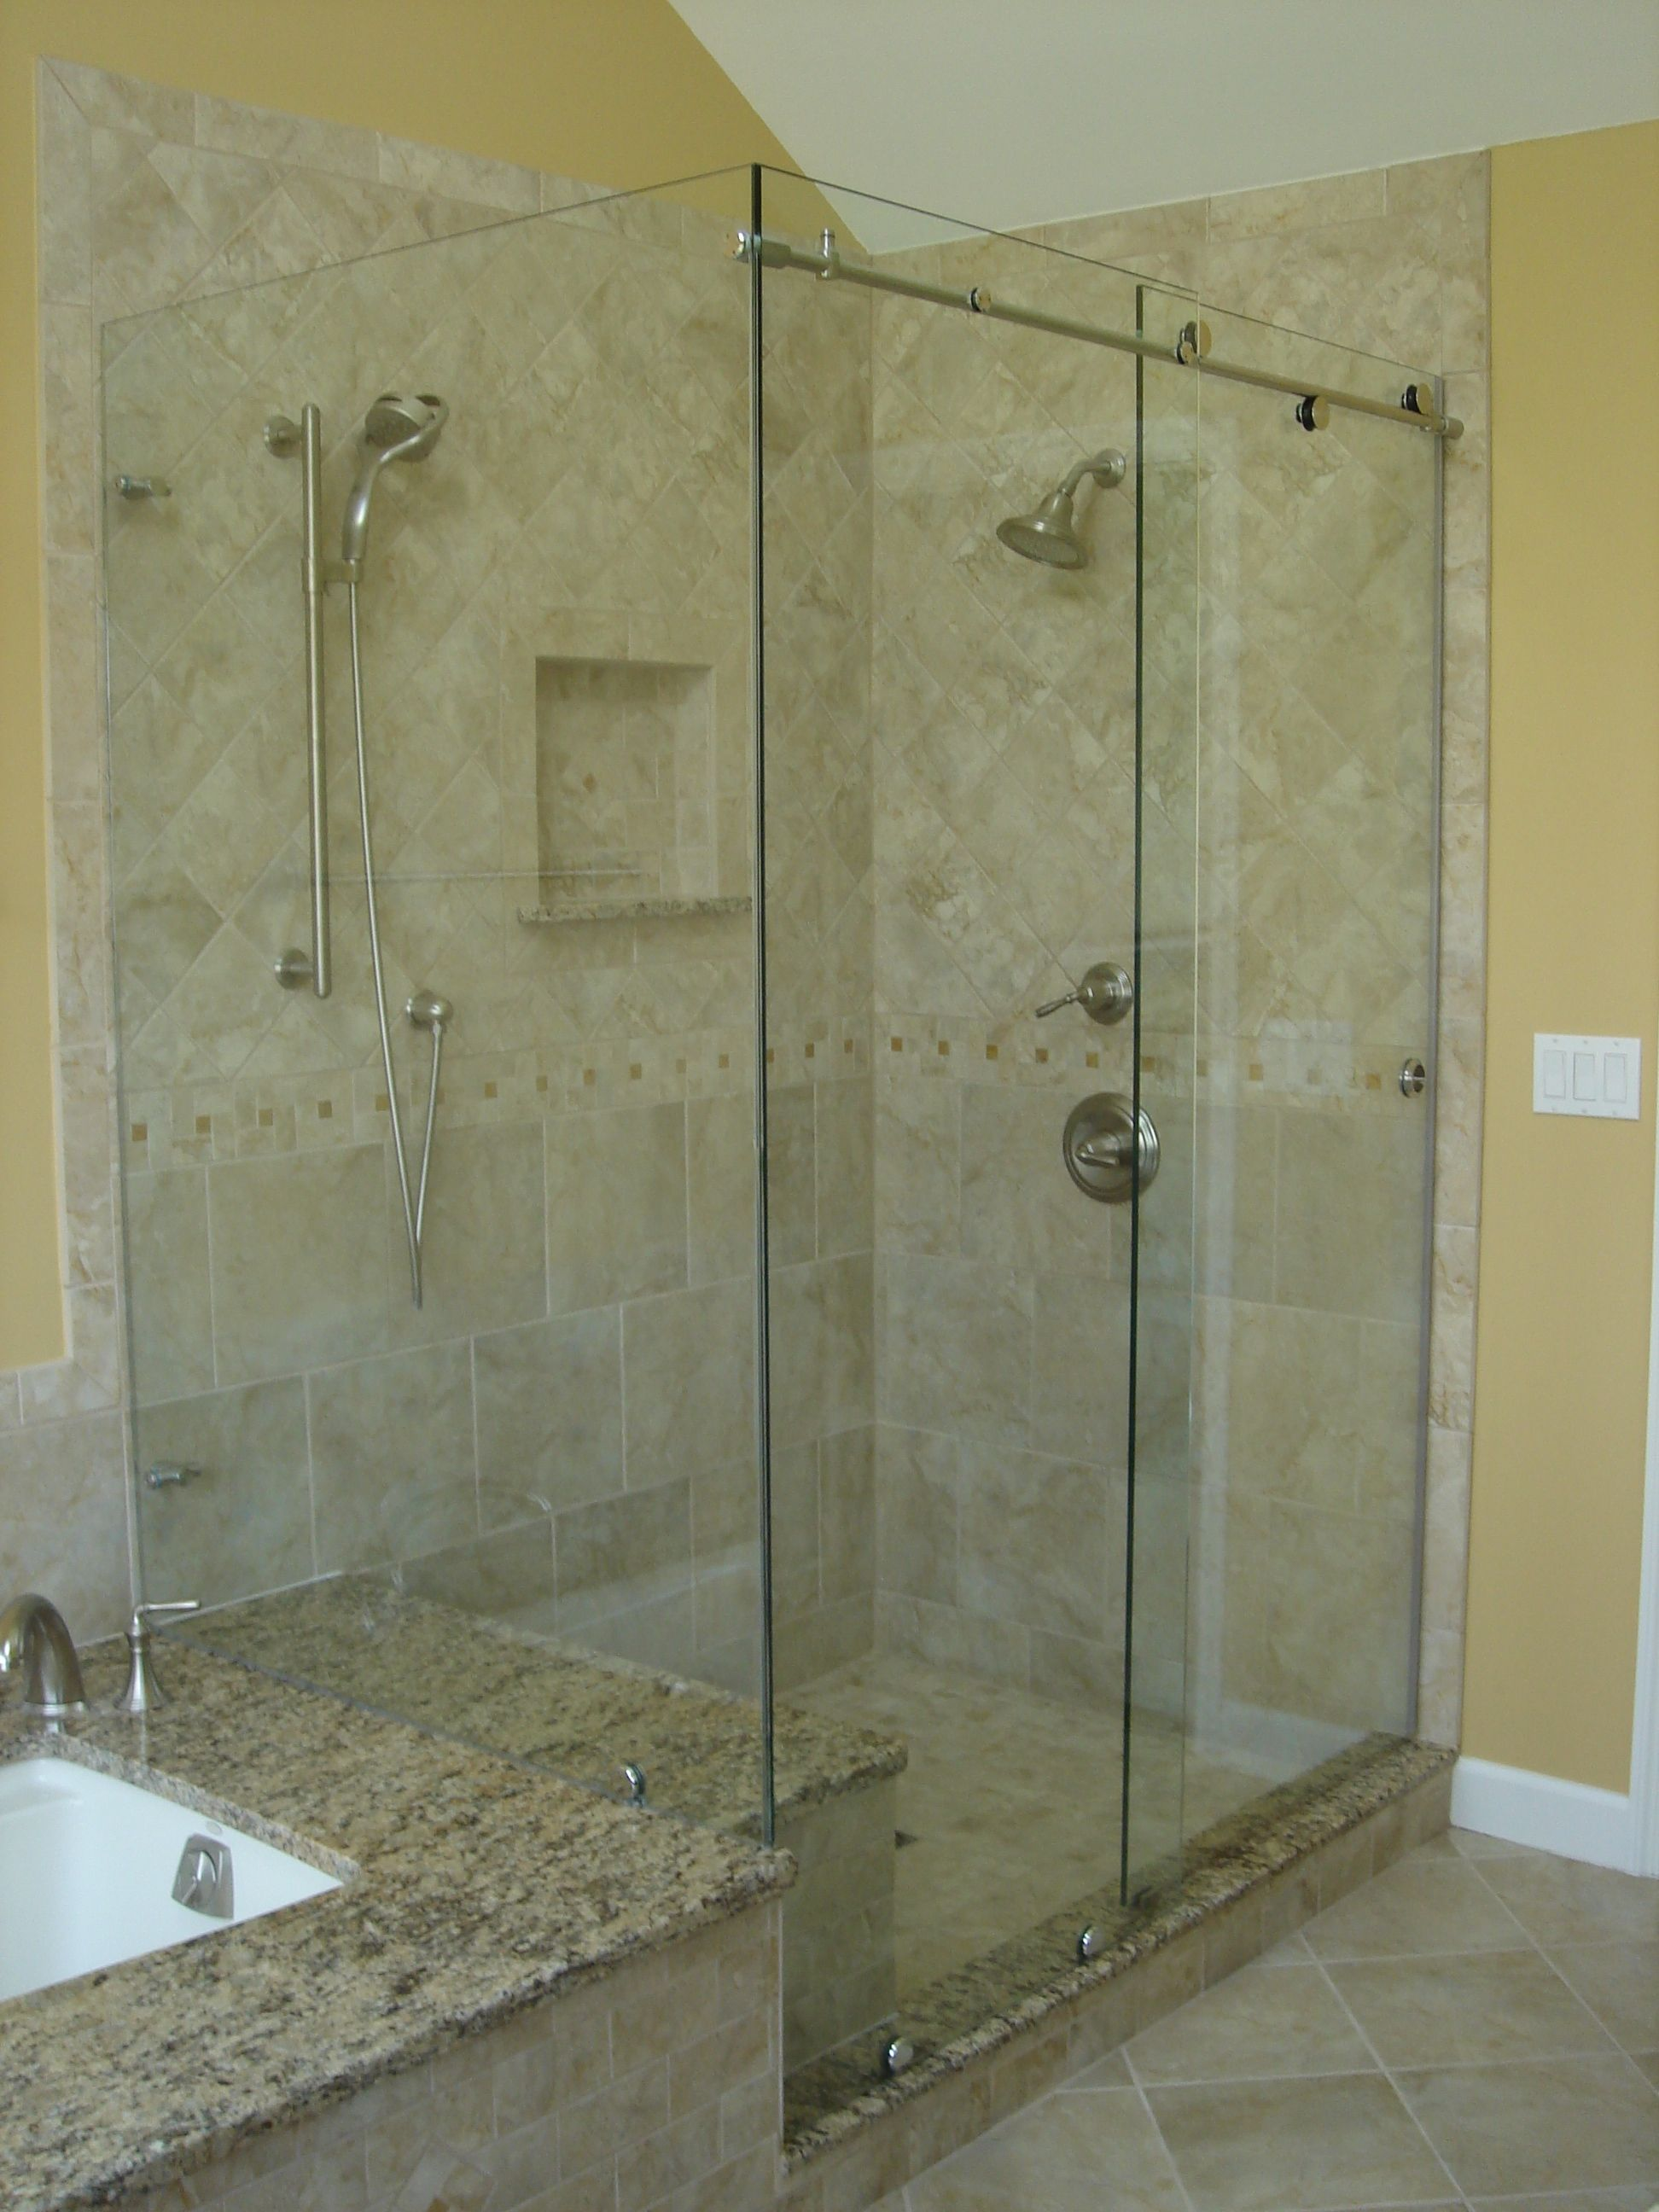 glass shower doors frameless | New Cardinal Skyline Series Shower ...